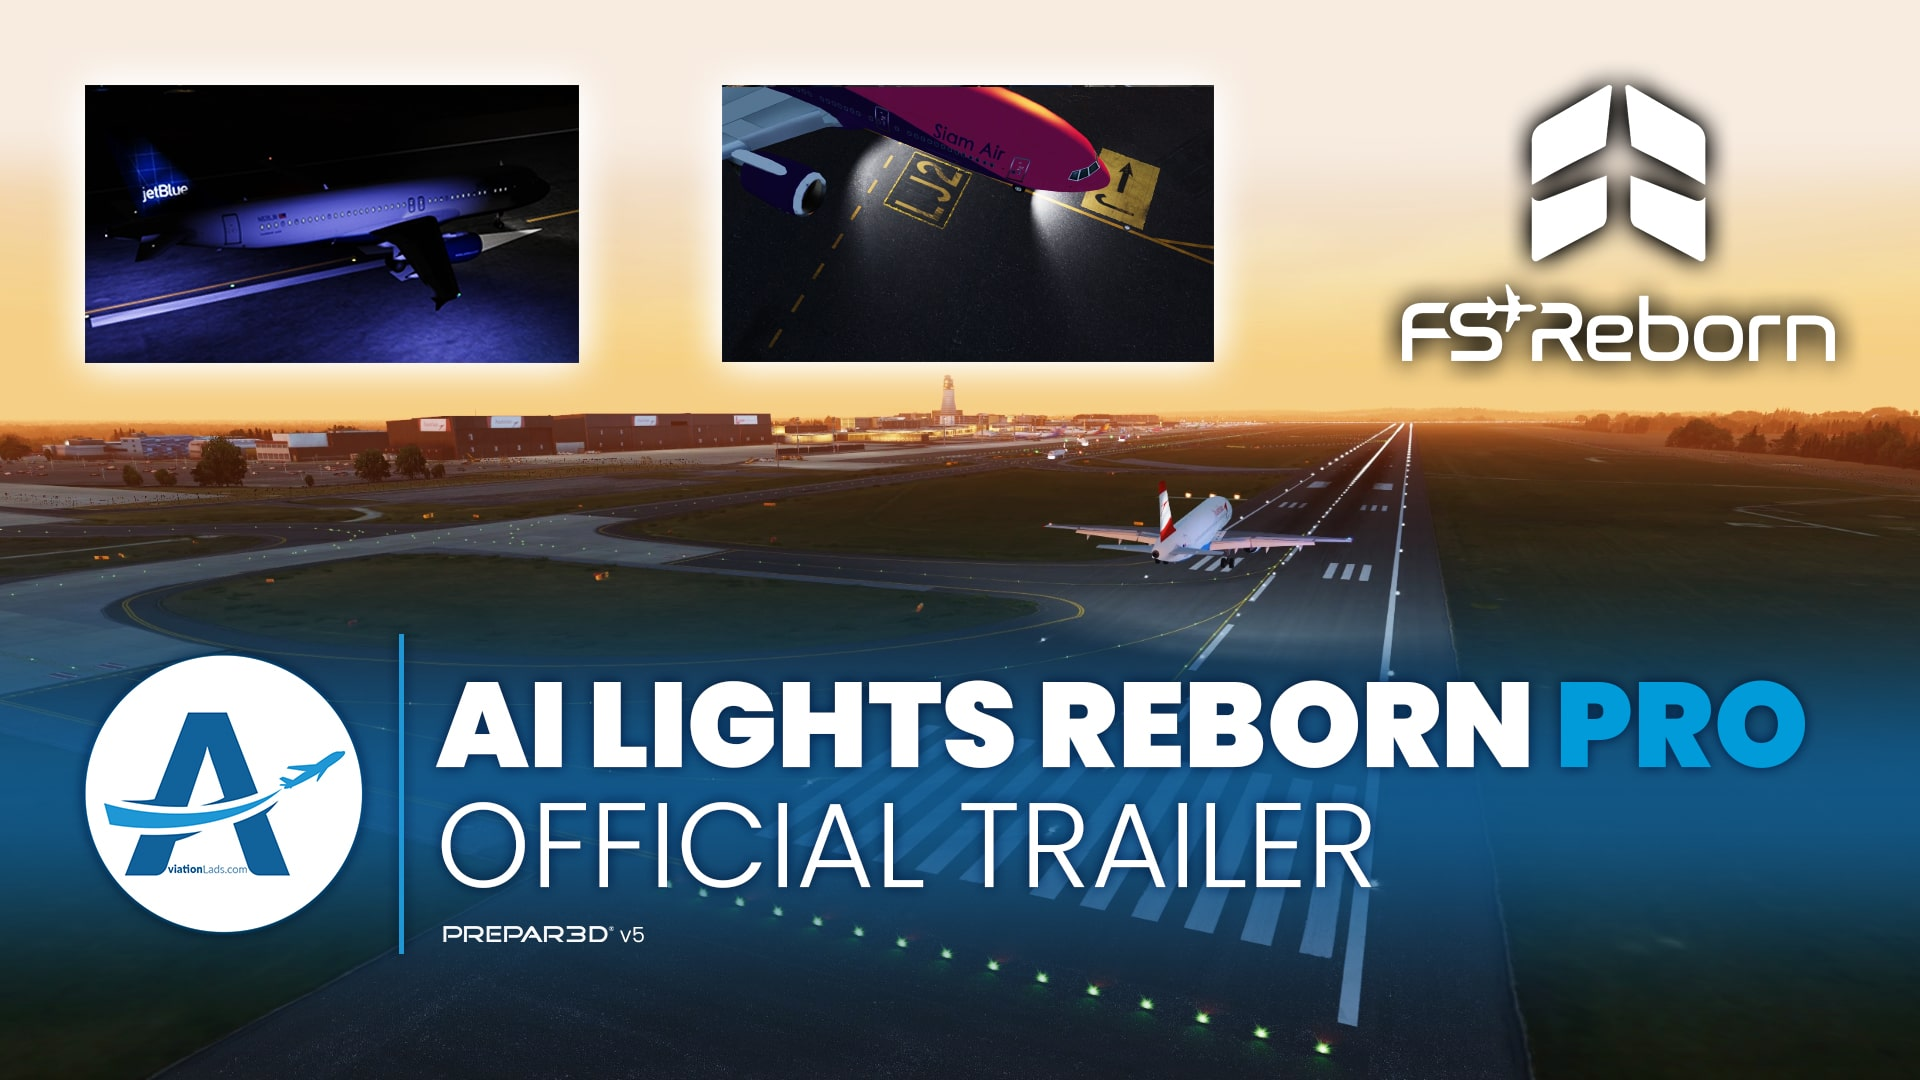 [TRAILER] FSREBORN | AI LIGHTS REBORN